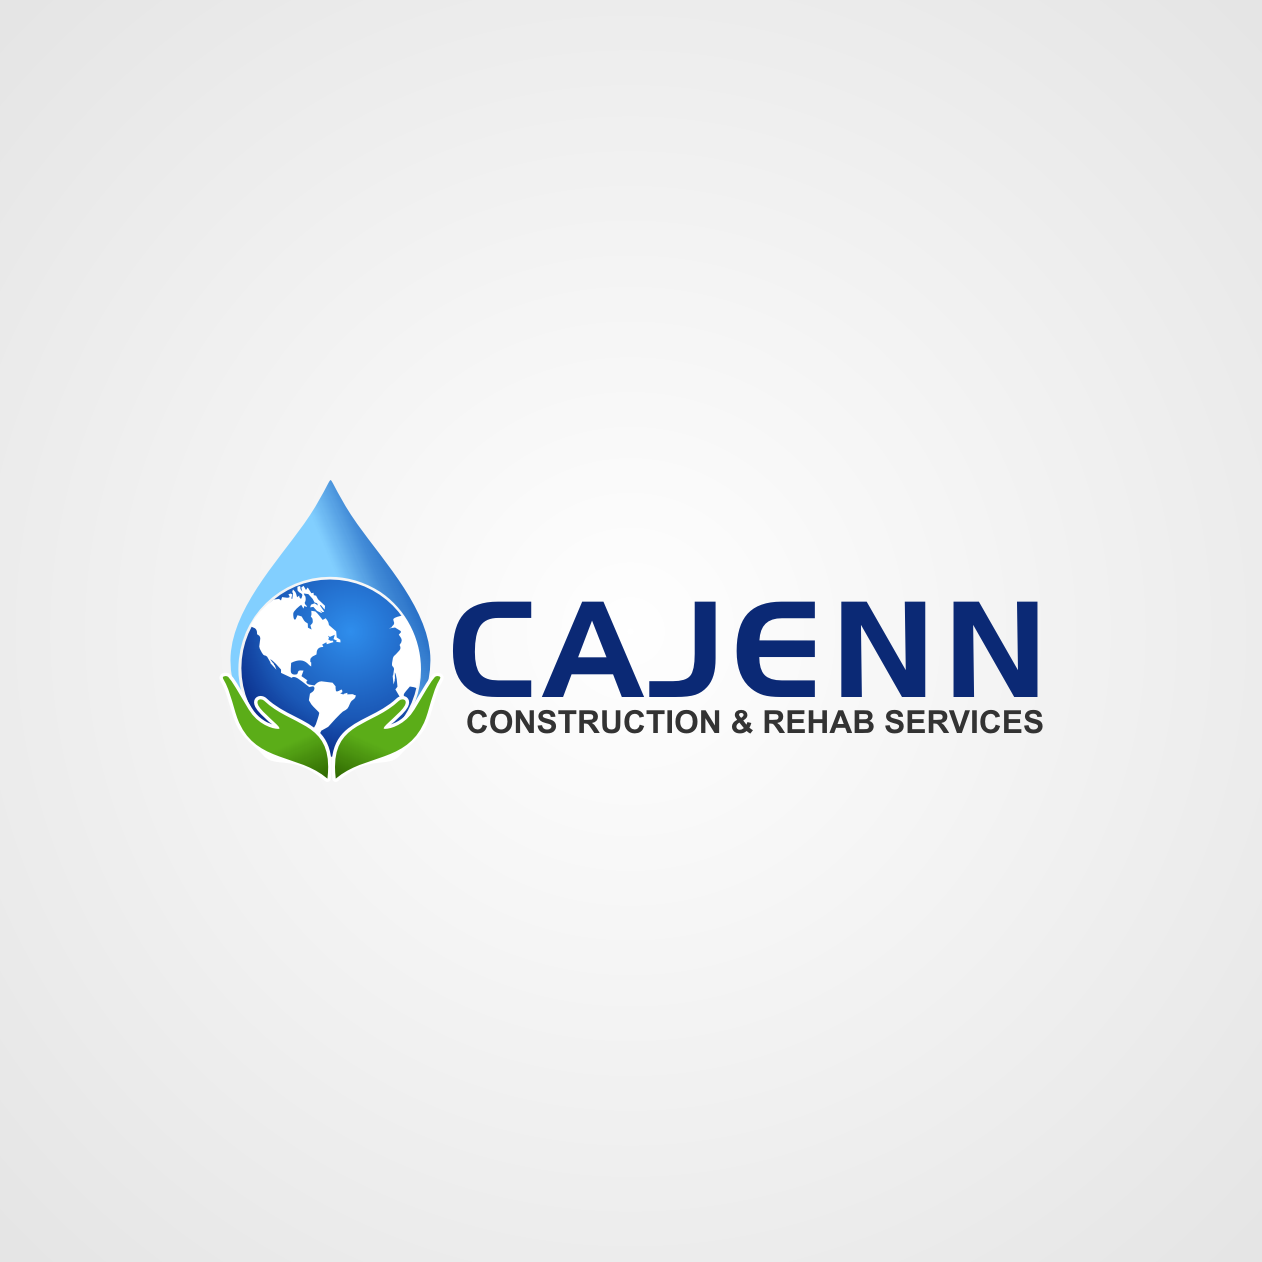 Logo Design by rifatz - Entry No. 272 in the Logo Design Contest New Logo Design for CaJenn Construction & Rehab Services.